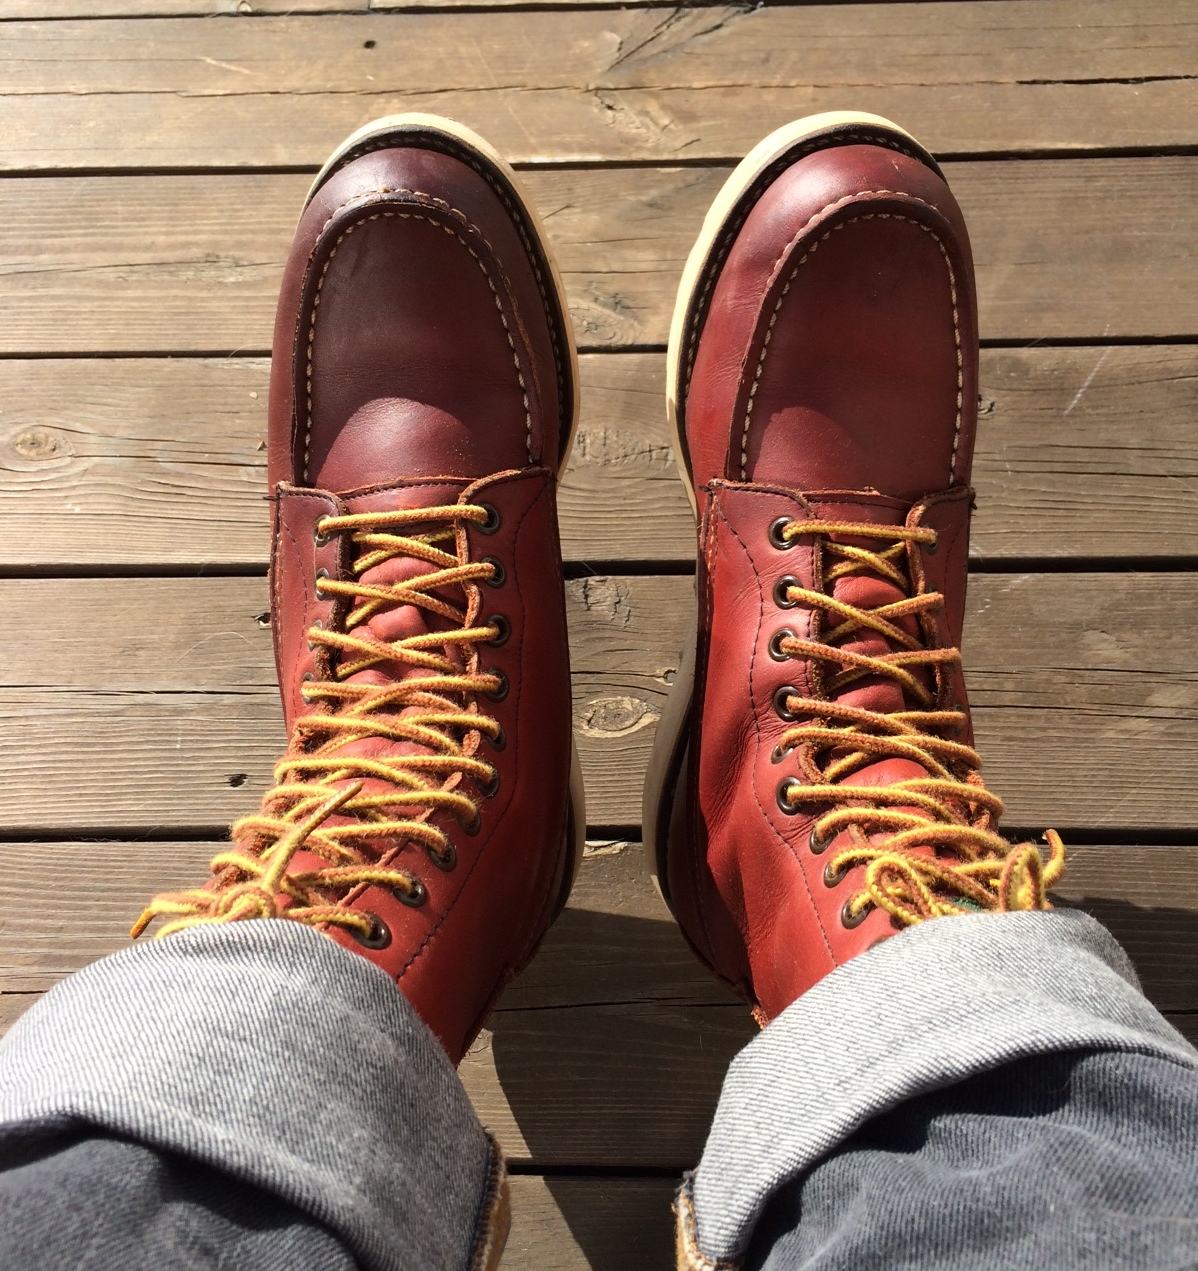 Why shoe sizes are a mess – Well Dressed Dad